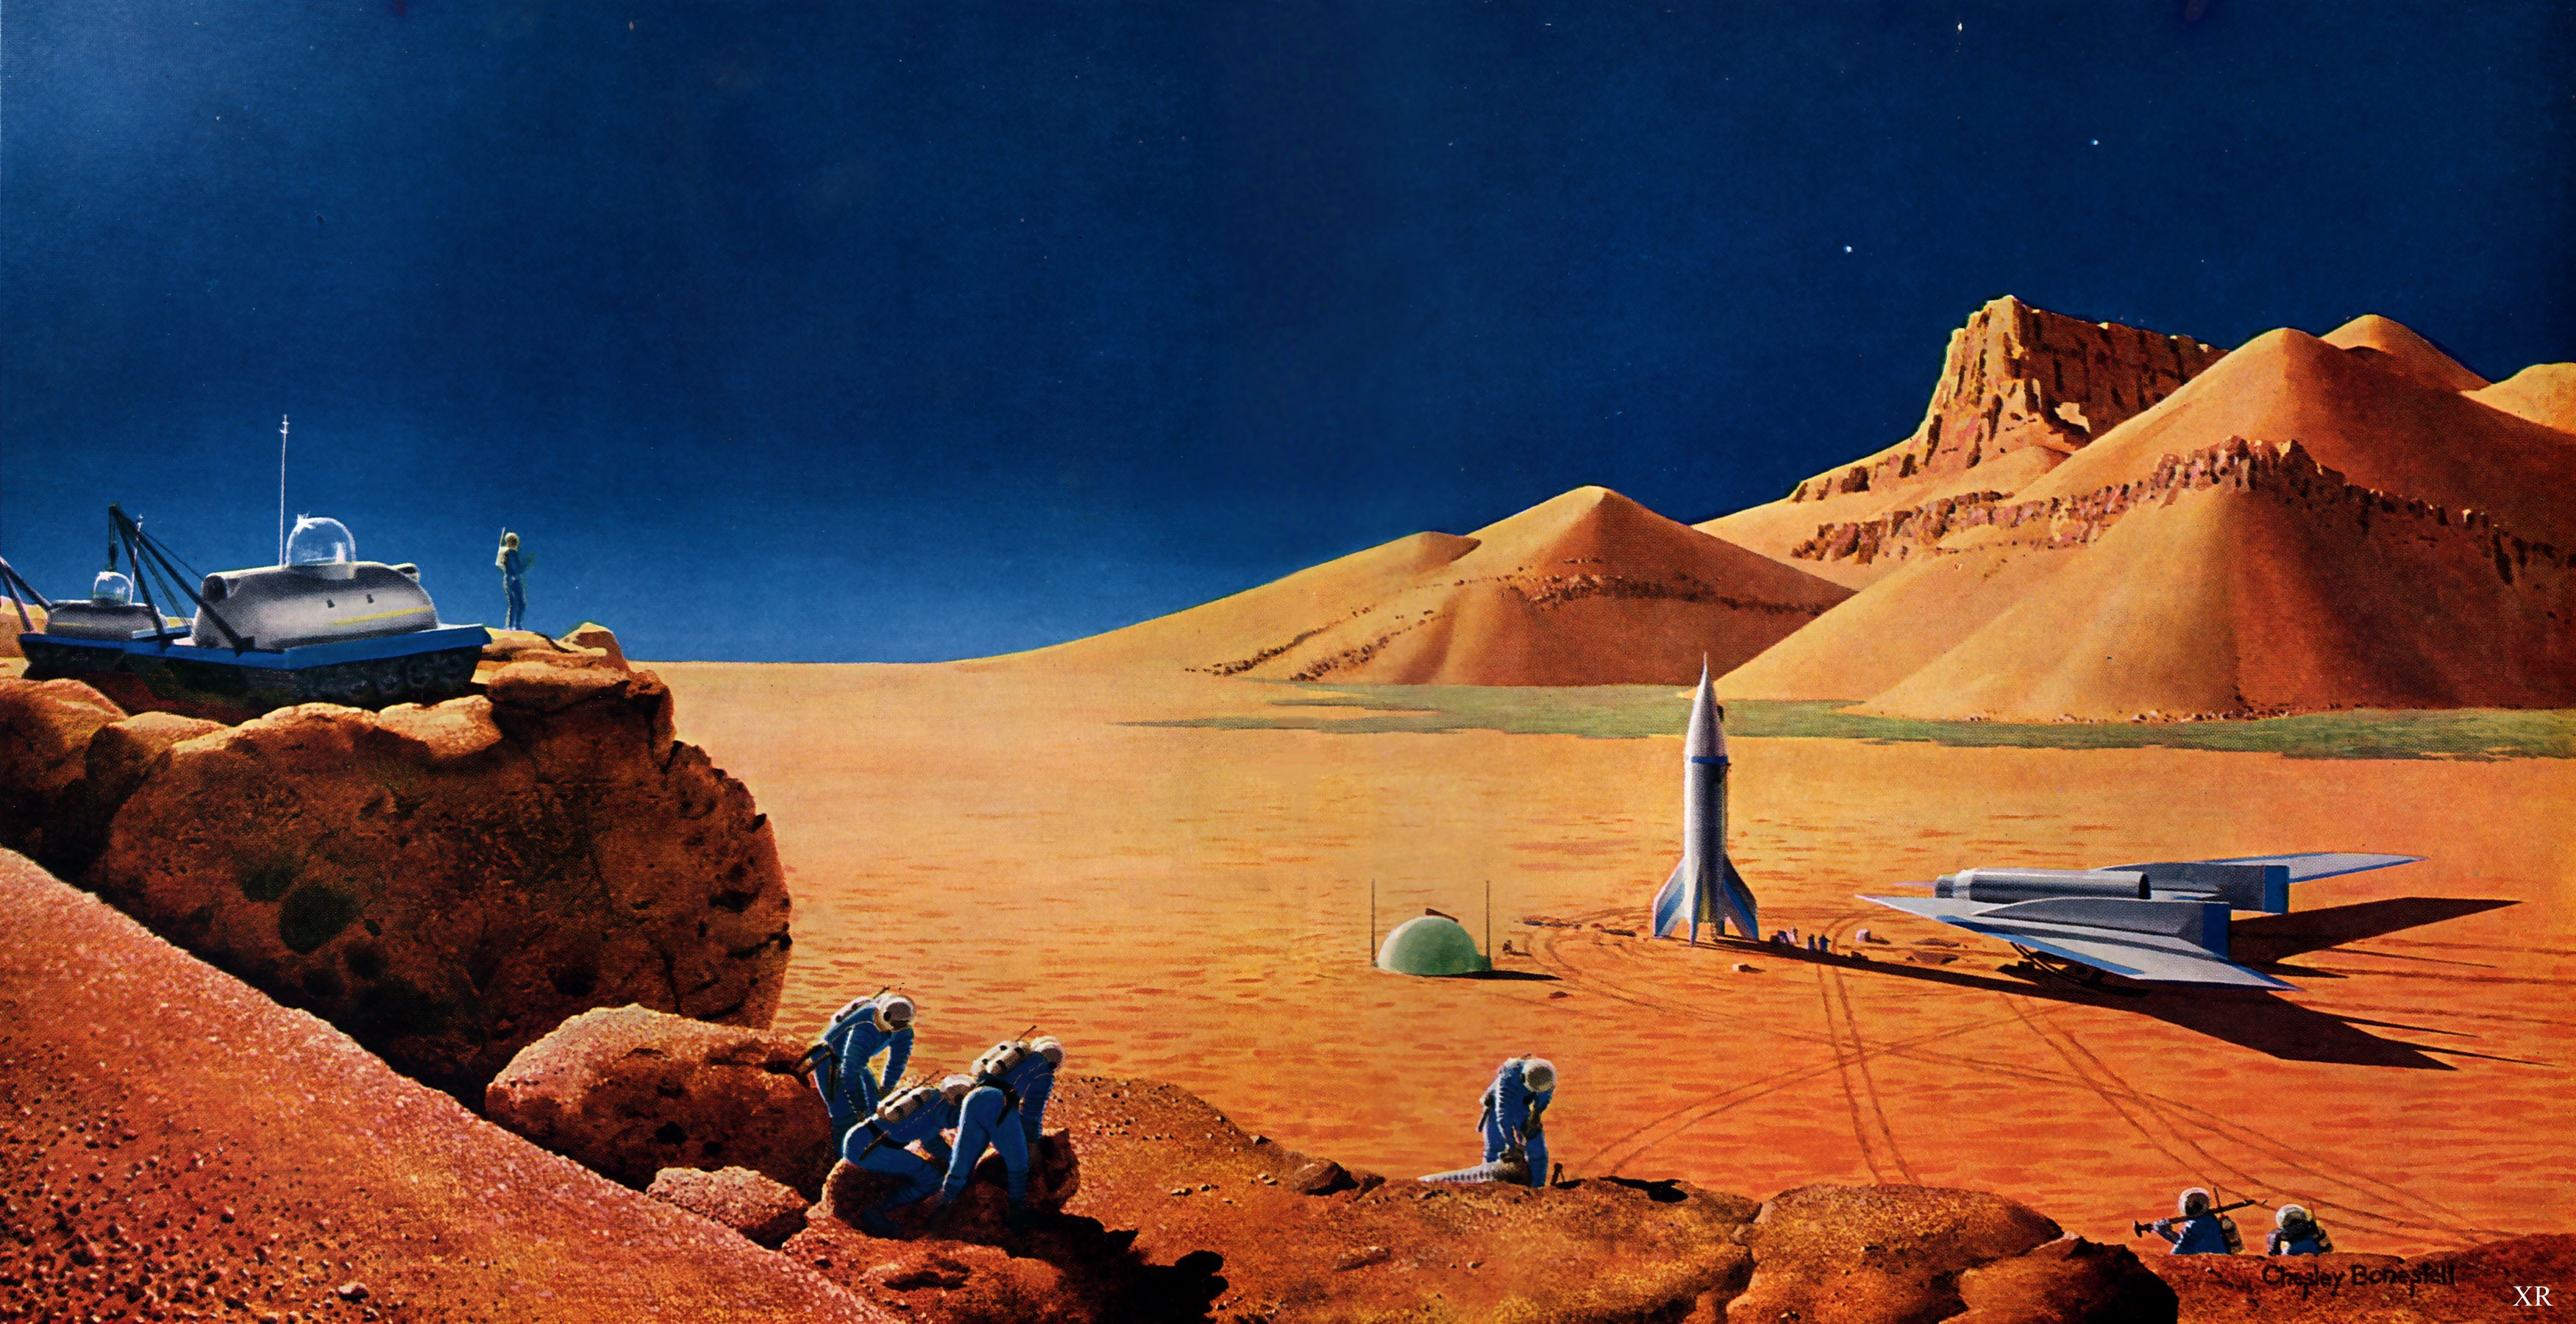 landscapes · outer space · futuristic · planets · Mars · science fiction